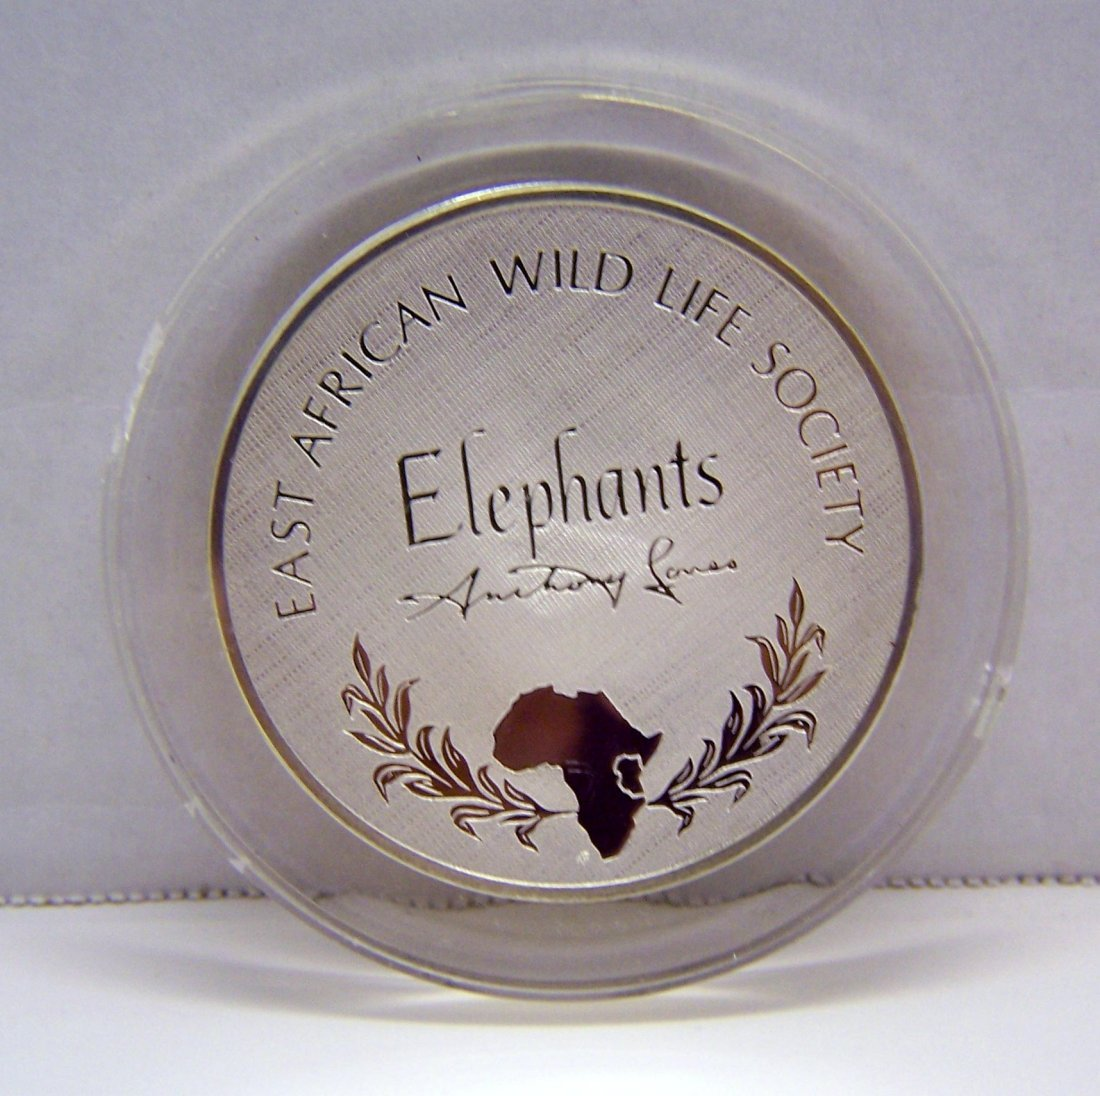 East African Wildlife Society elephants Sterling coin